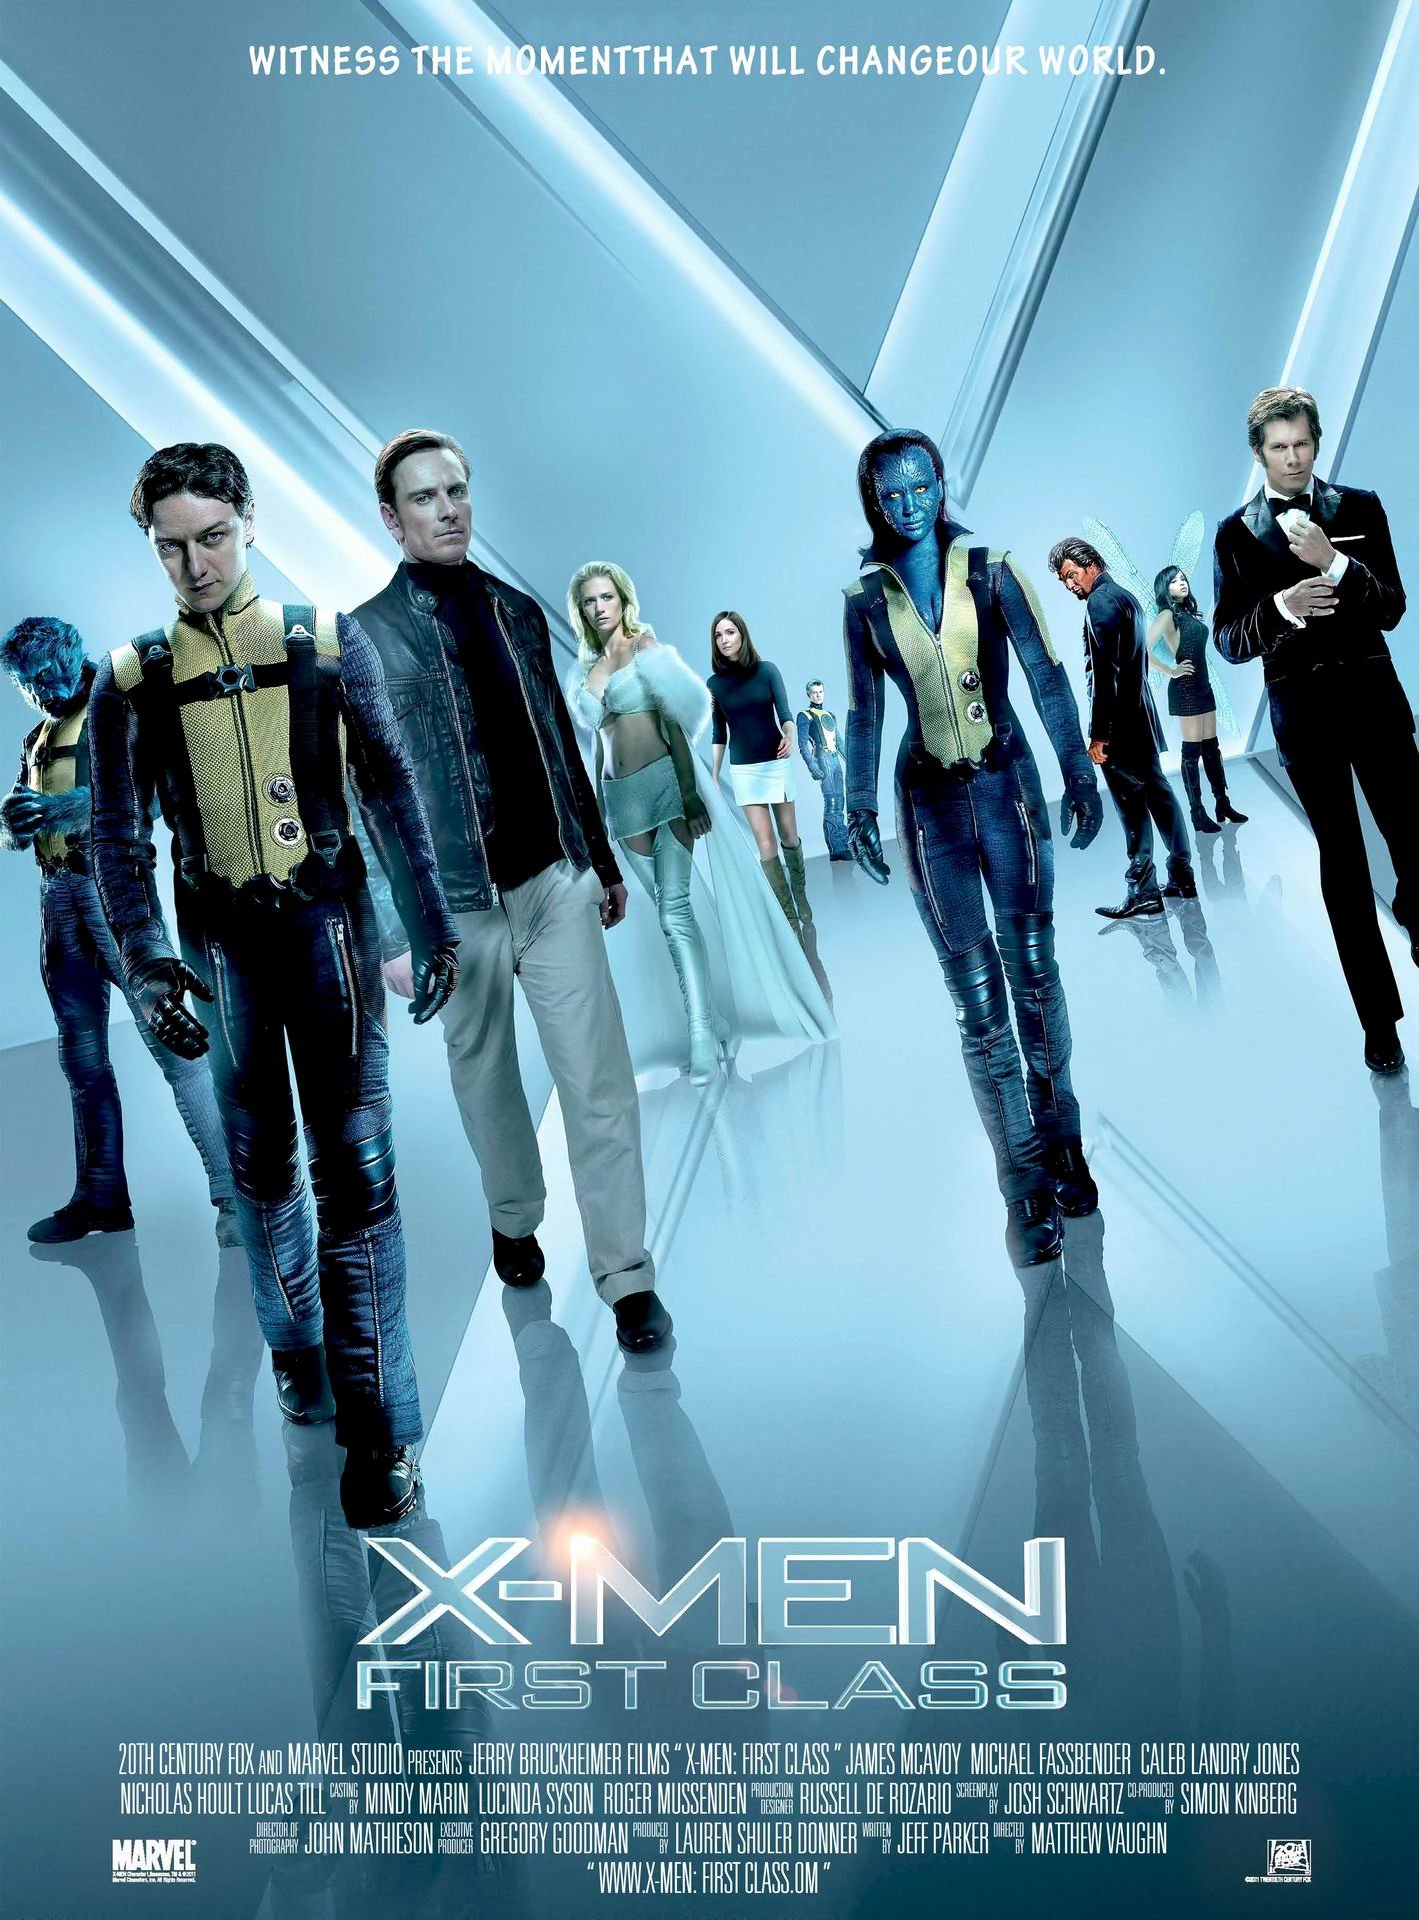 x men first class 2011 poster. Black Bedroom Furniture Sets. Home Design Ideas